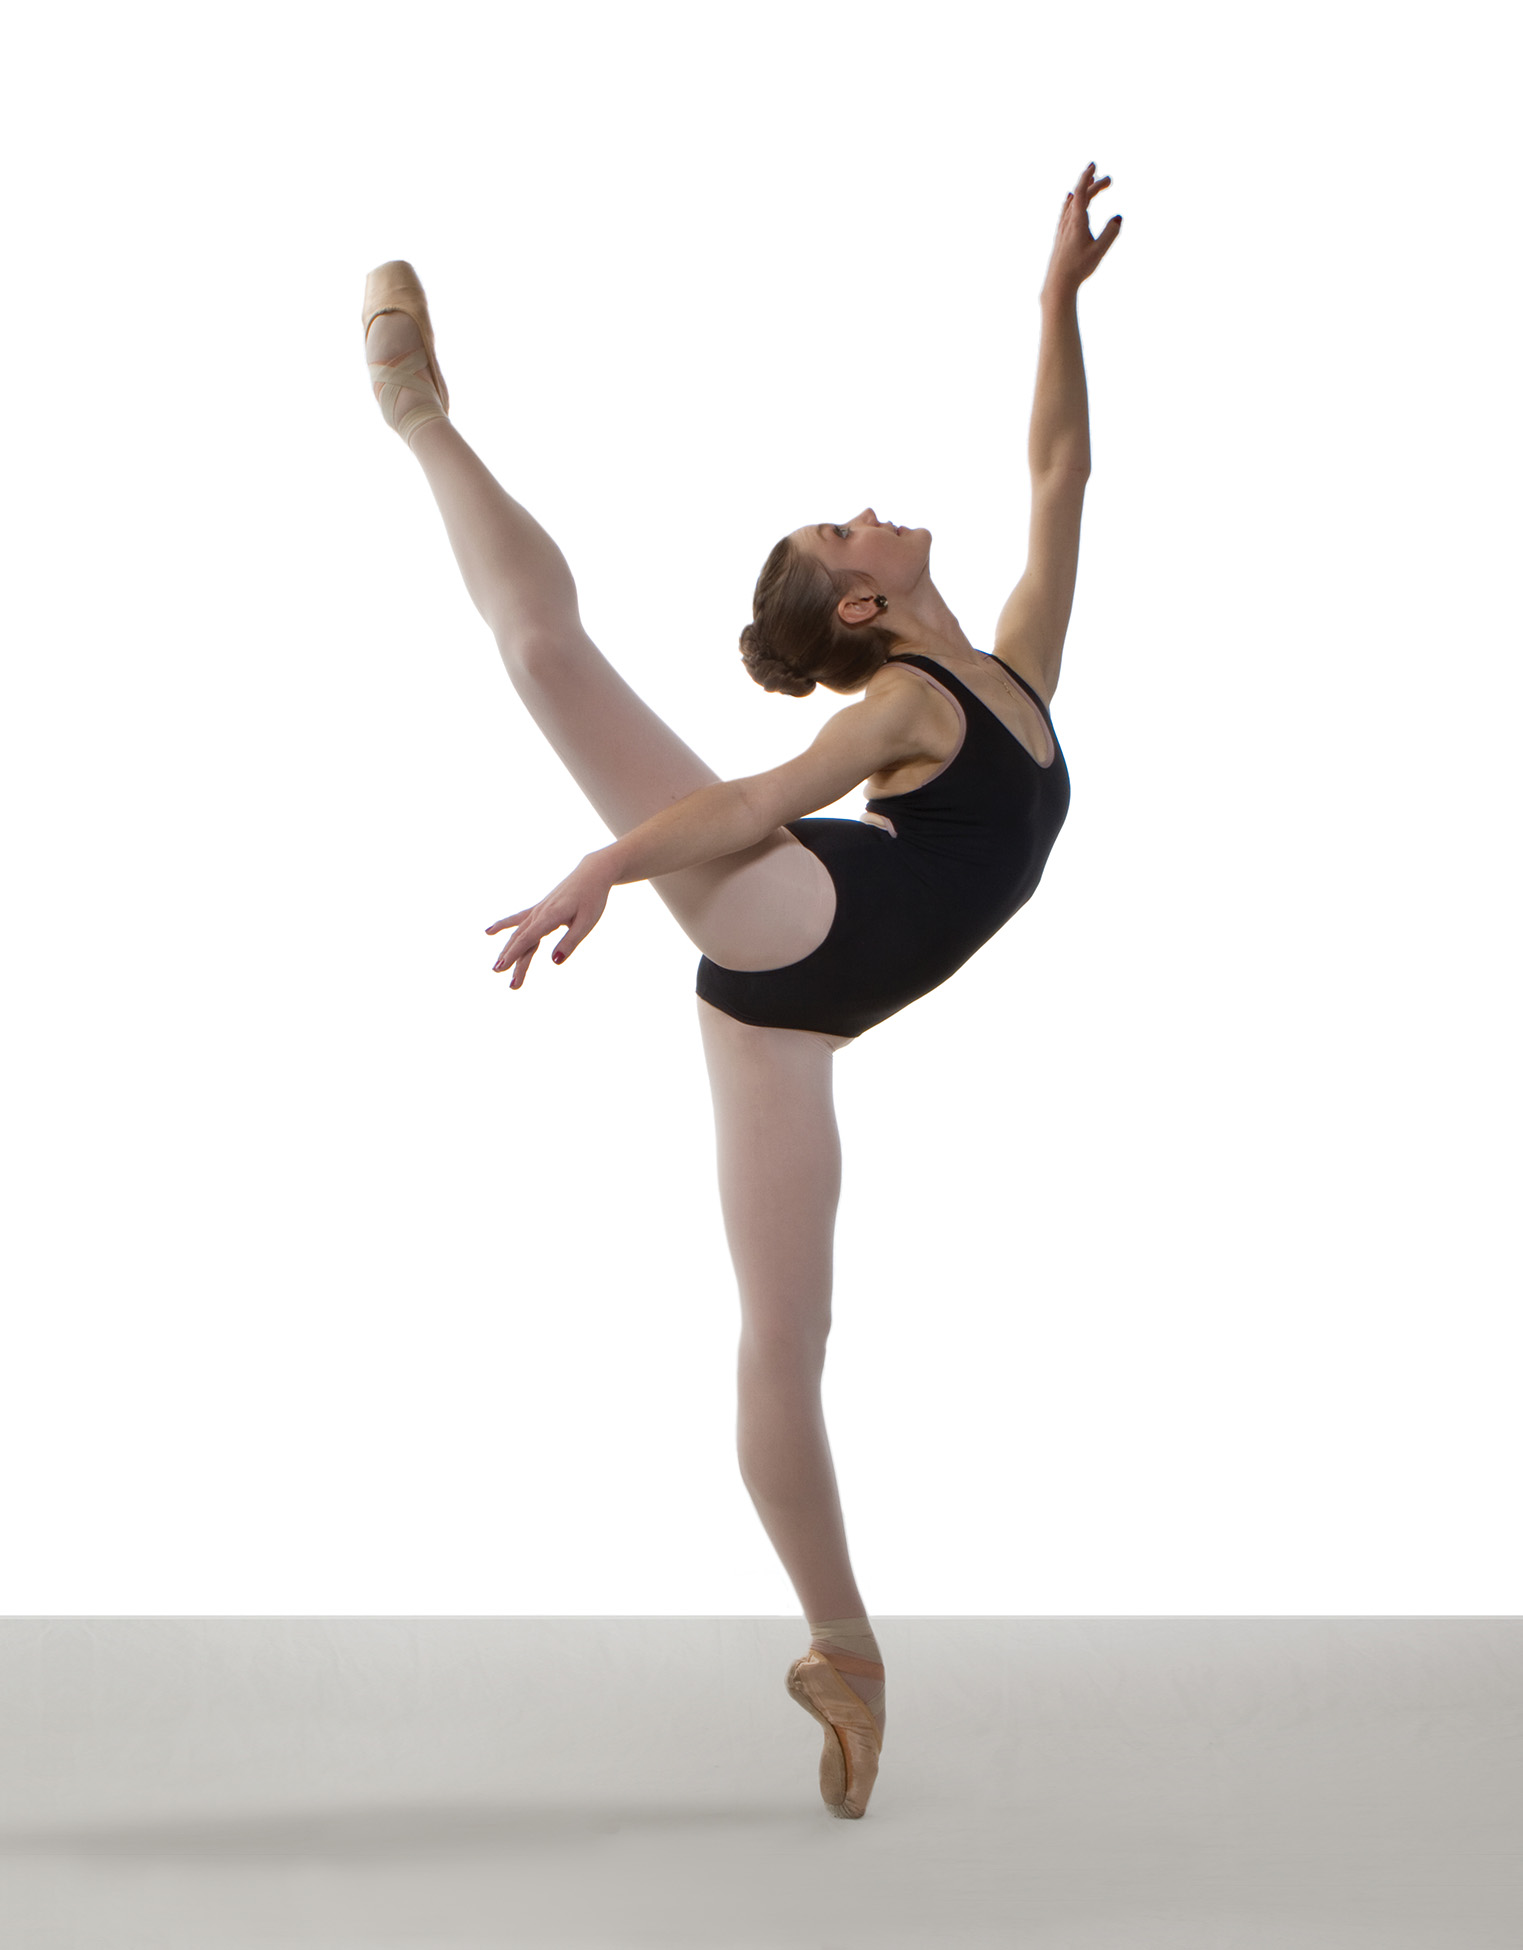 Drawn ballerine modern dancer Reviews Reviews Ballet Joffrey The